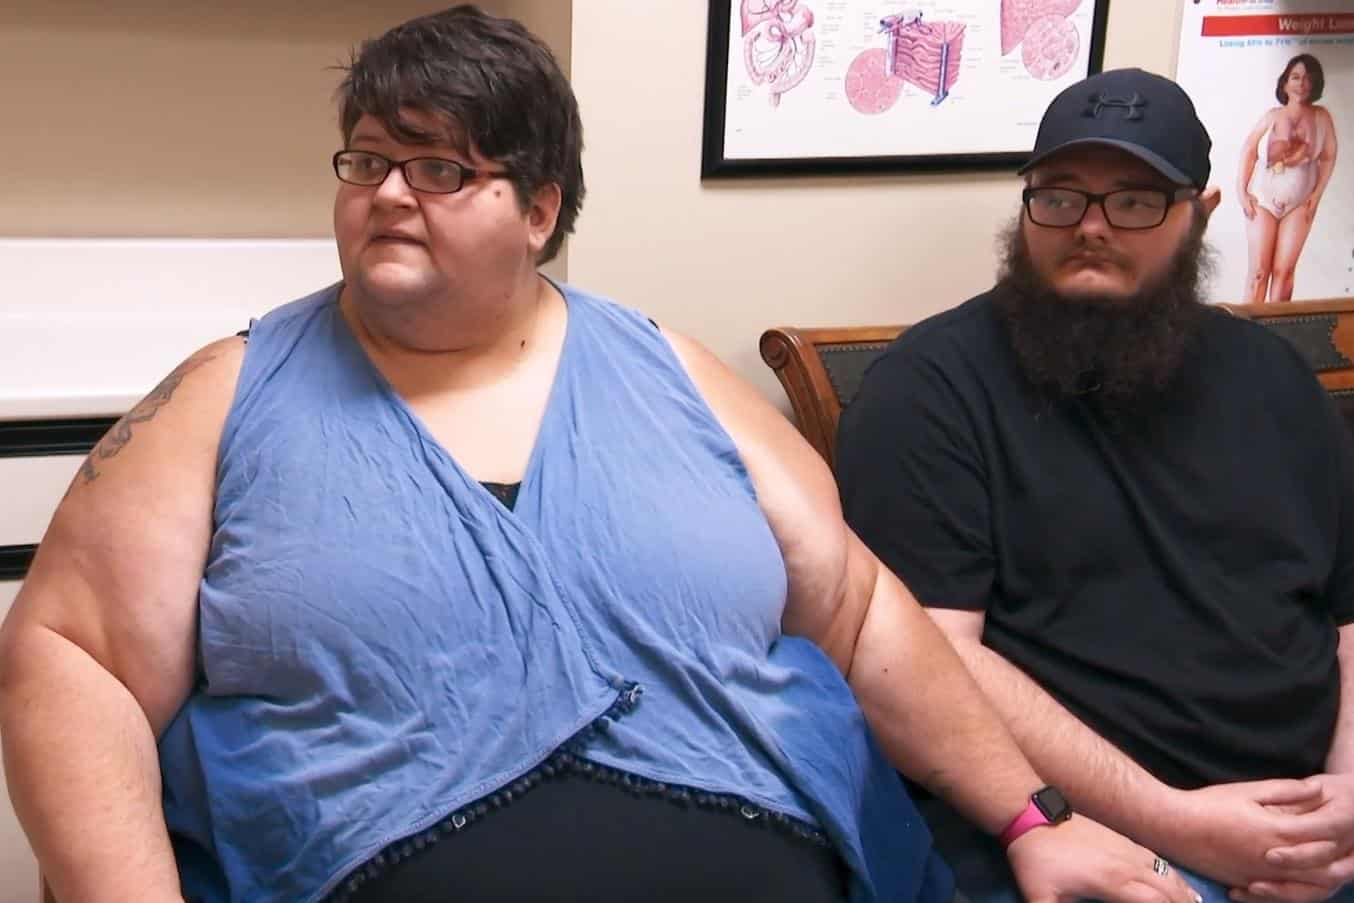 PHOTOS: See My 600-Lb Life Star Krystal Hall's Weight Loss Photos Update! Did She Get Approved for Surgery After Being Sidetracked?